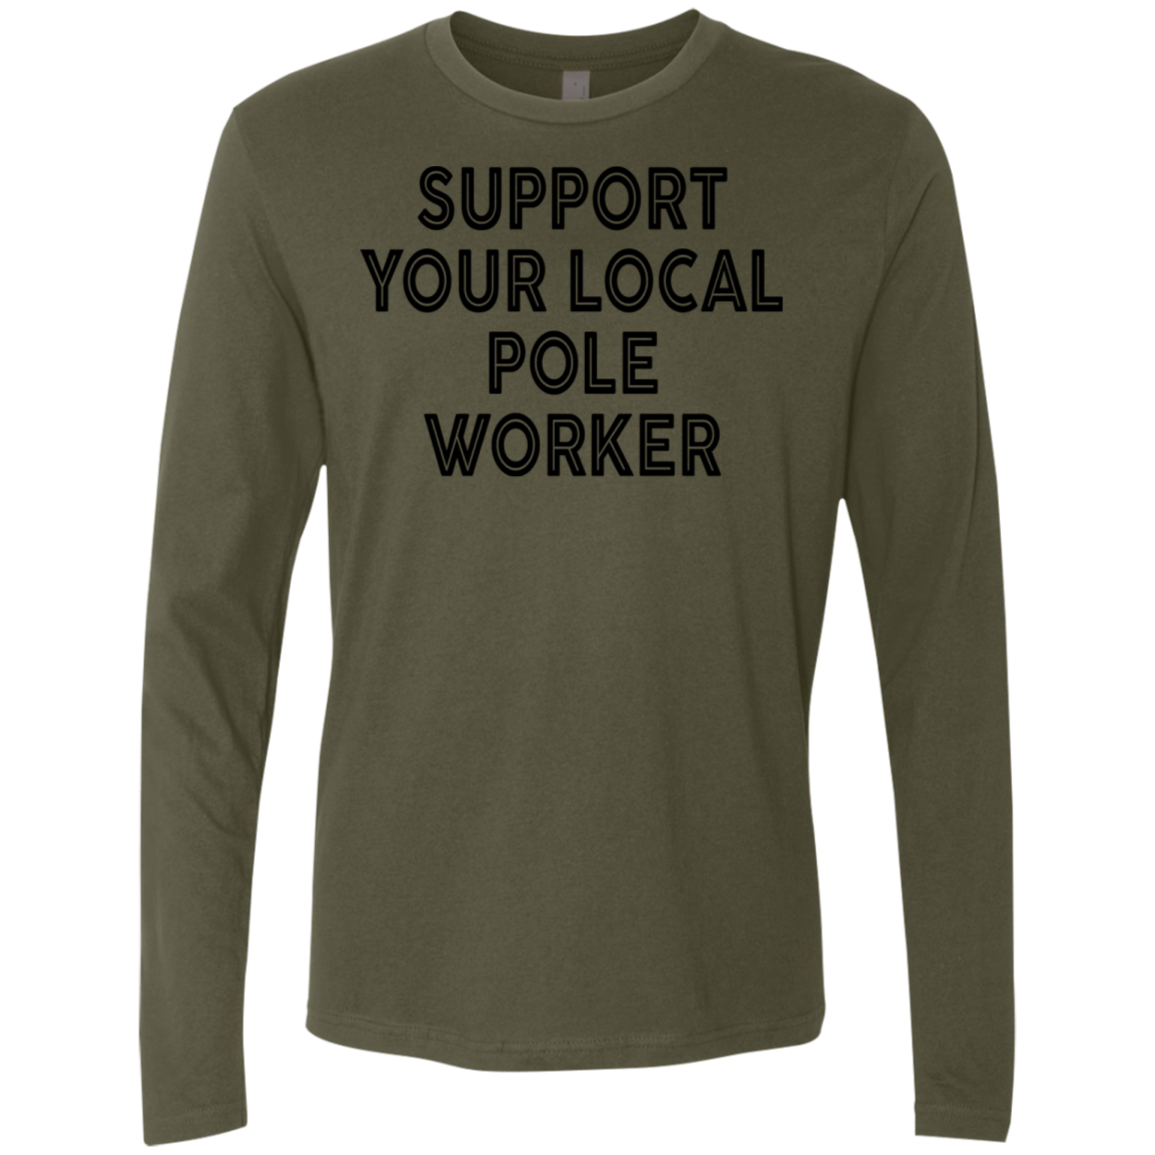 Support Your Local Pole Worker Men's Long Sleeve Tee